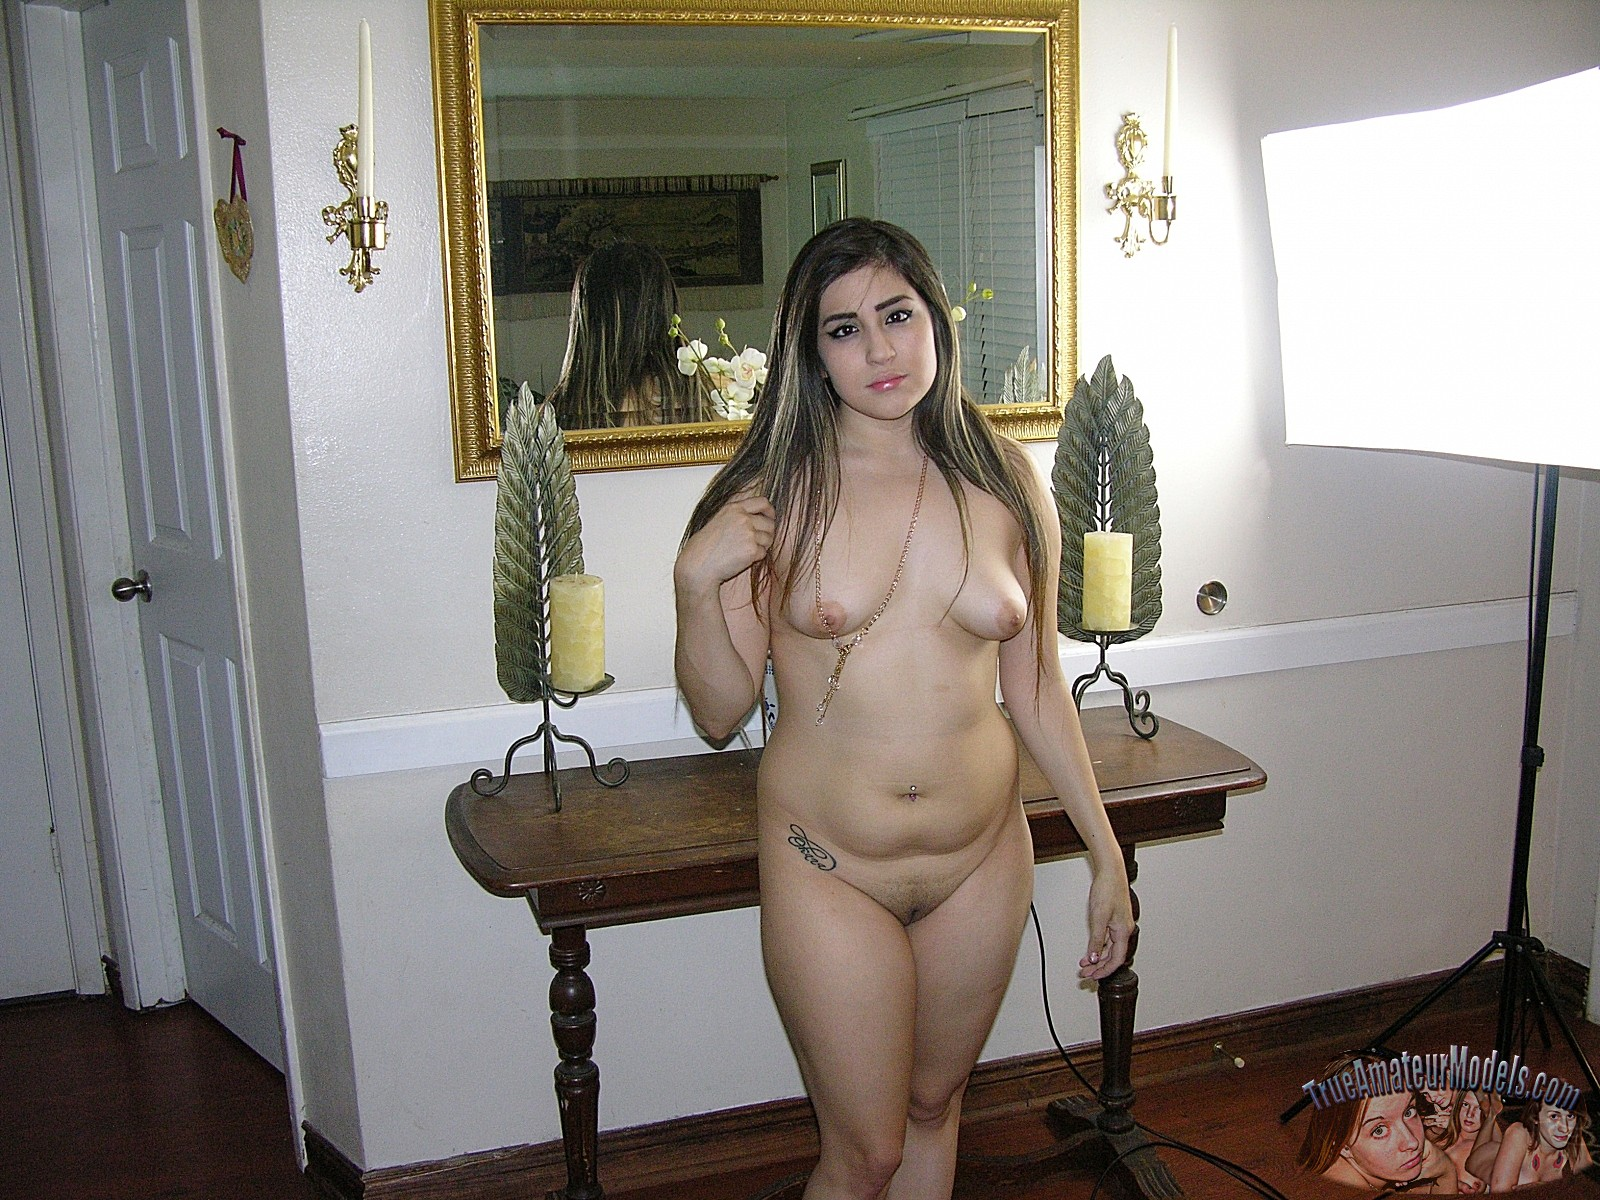 the latina girl nude